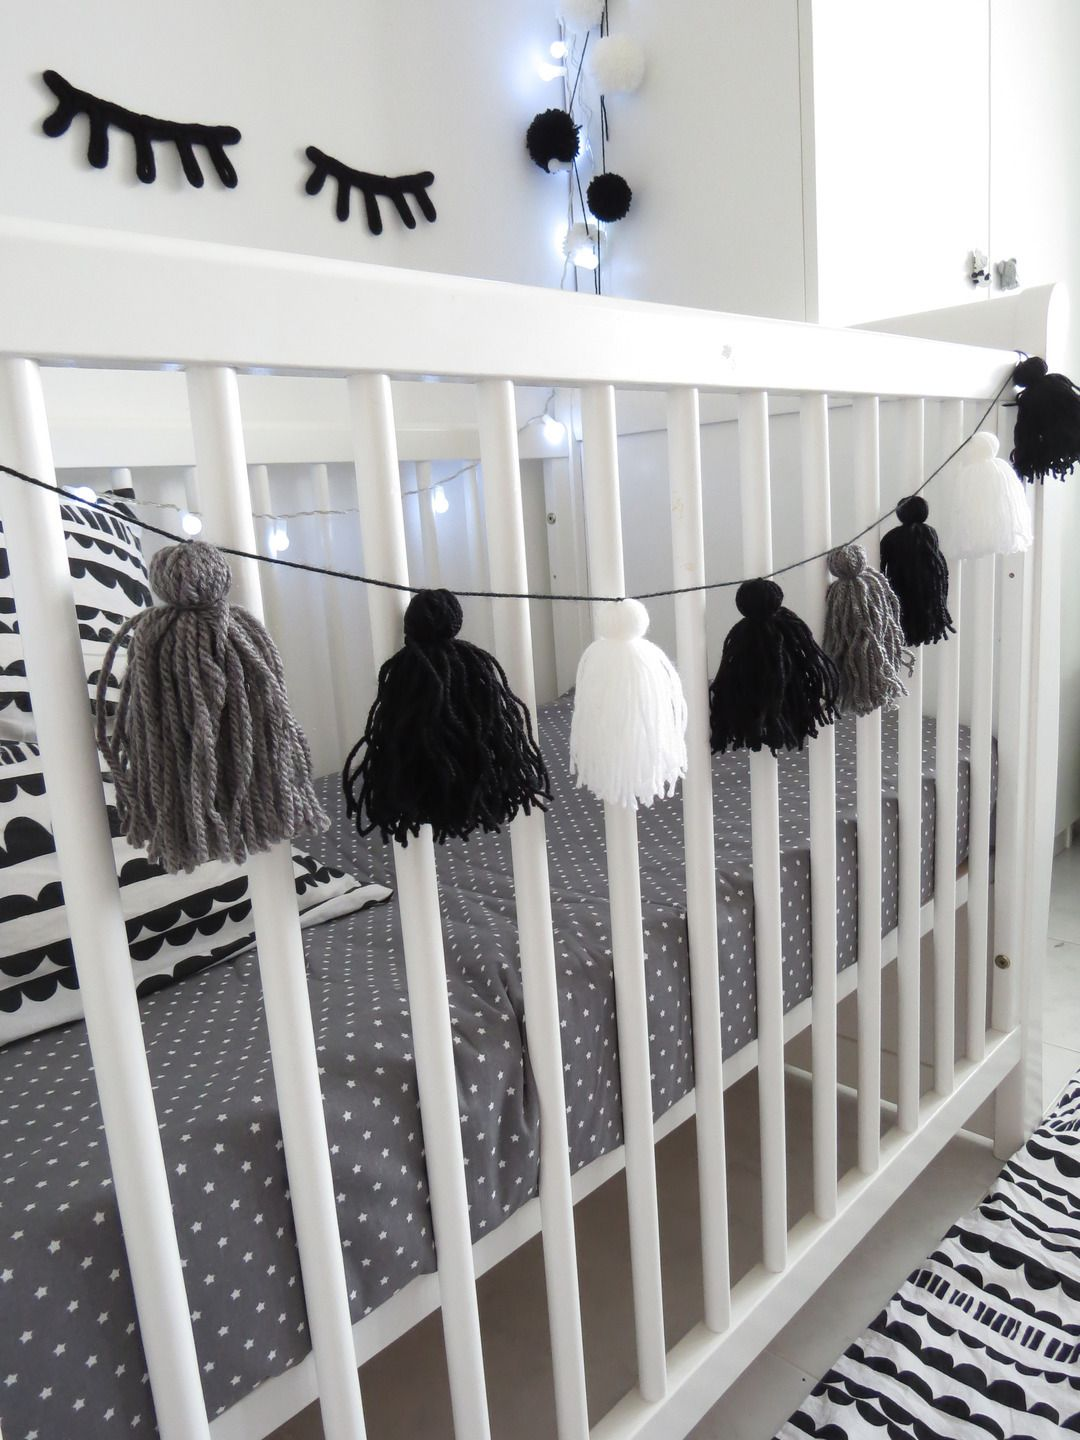 guirlande pompon laine noir gris et blanc scandinave d coration pour enfants par chiaradeco. Black Bedroom Furniture Sets. Home Design Ideas